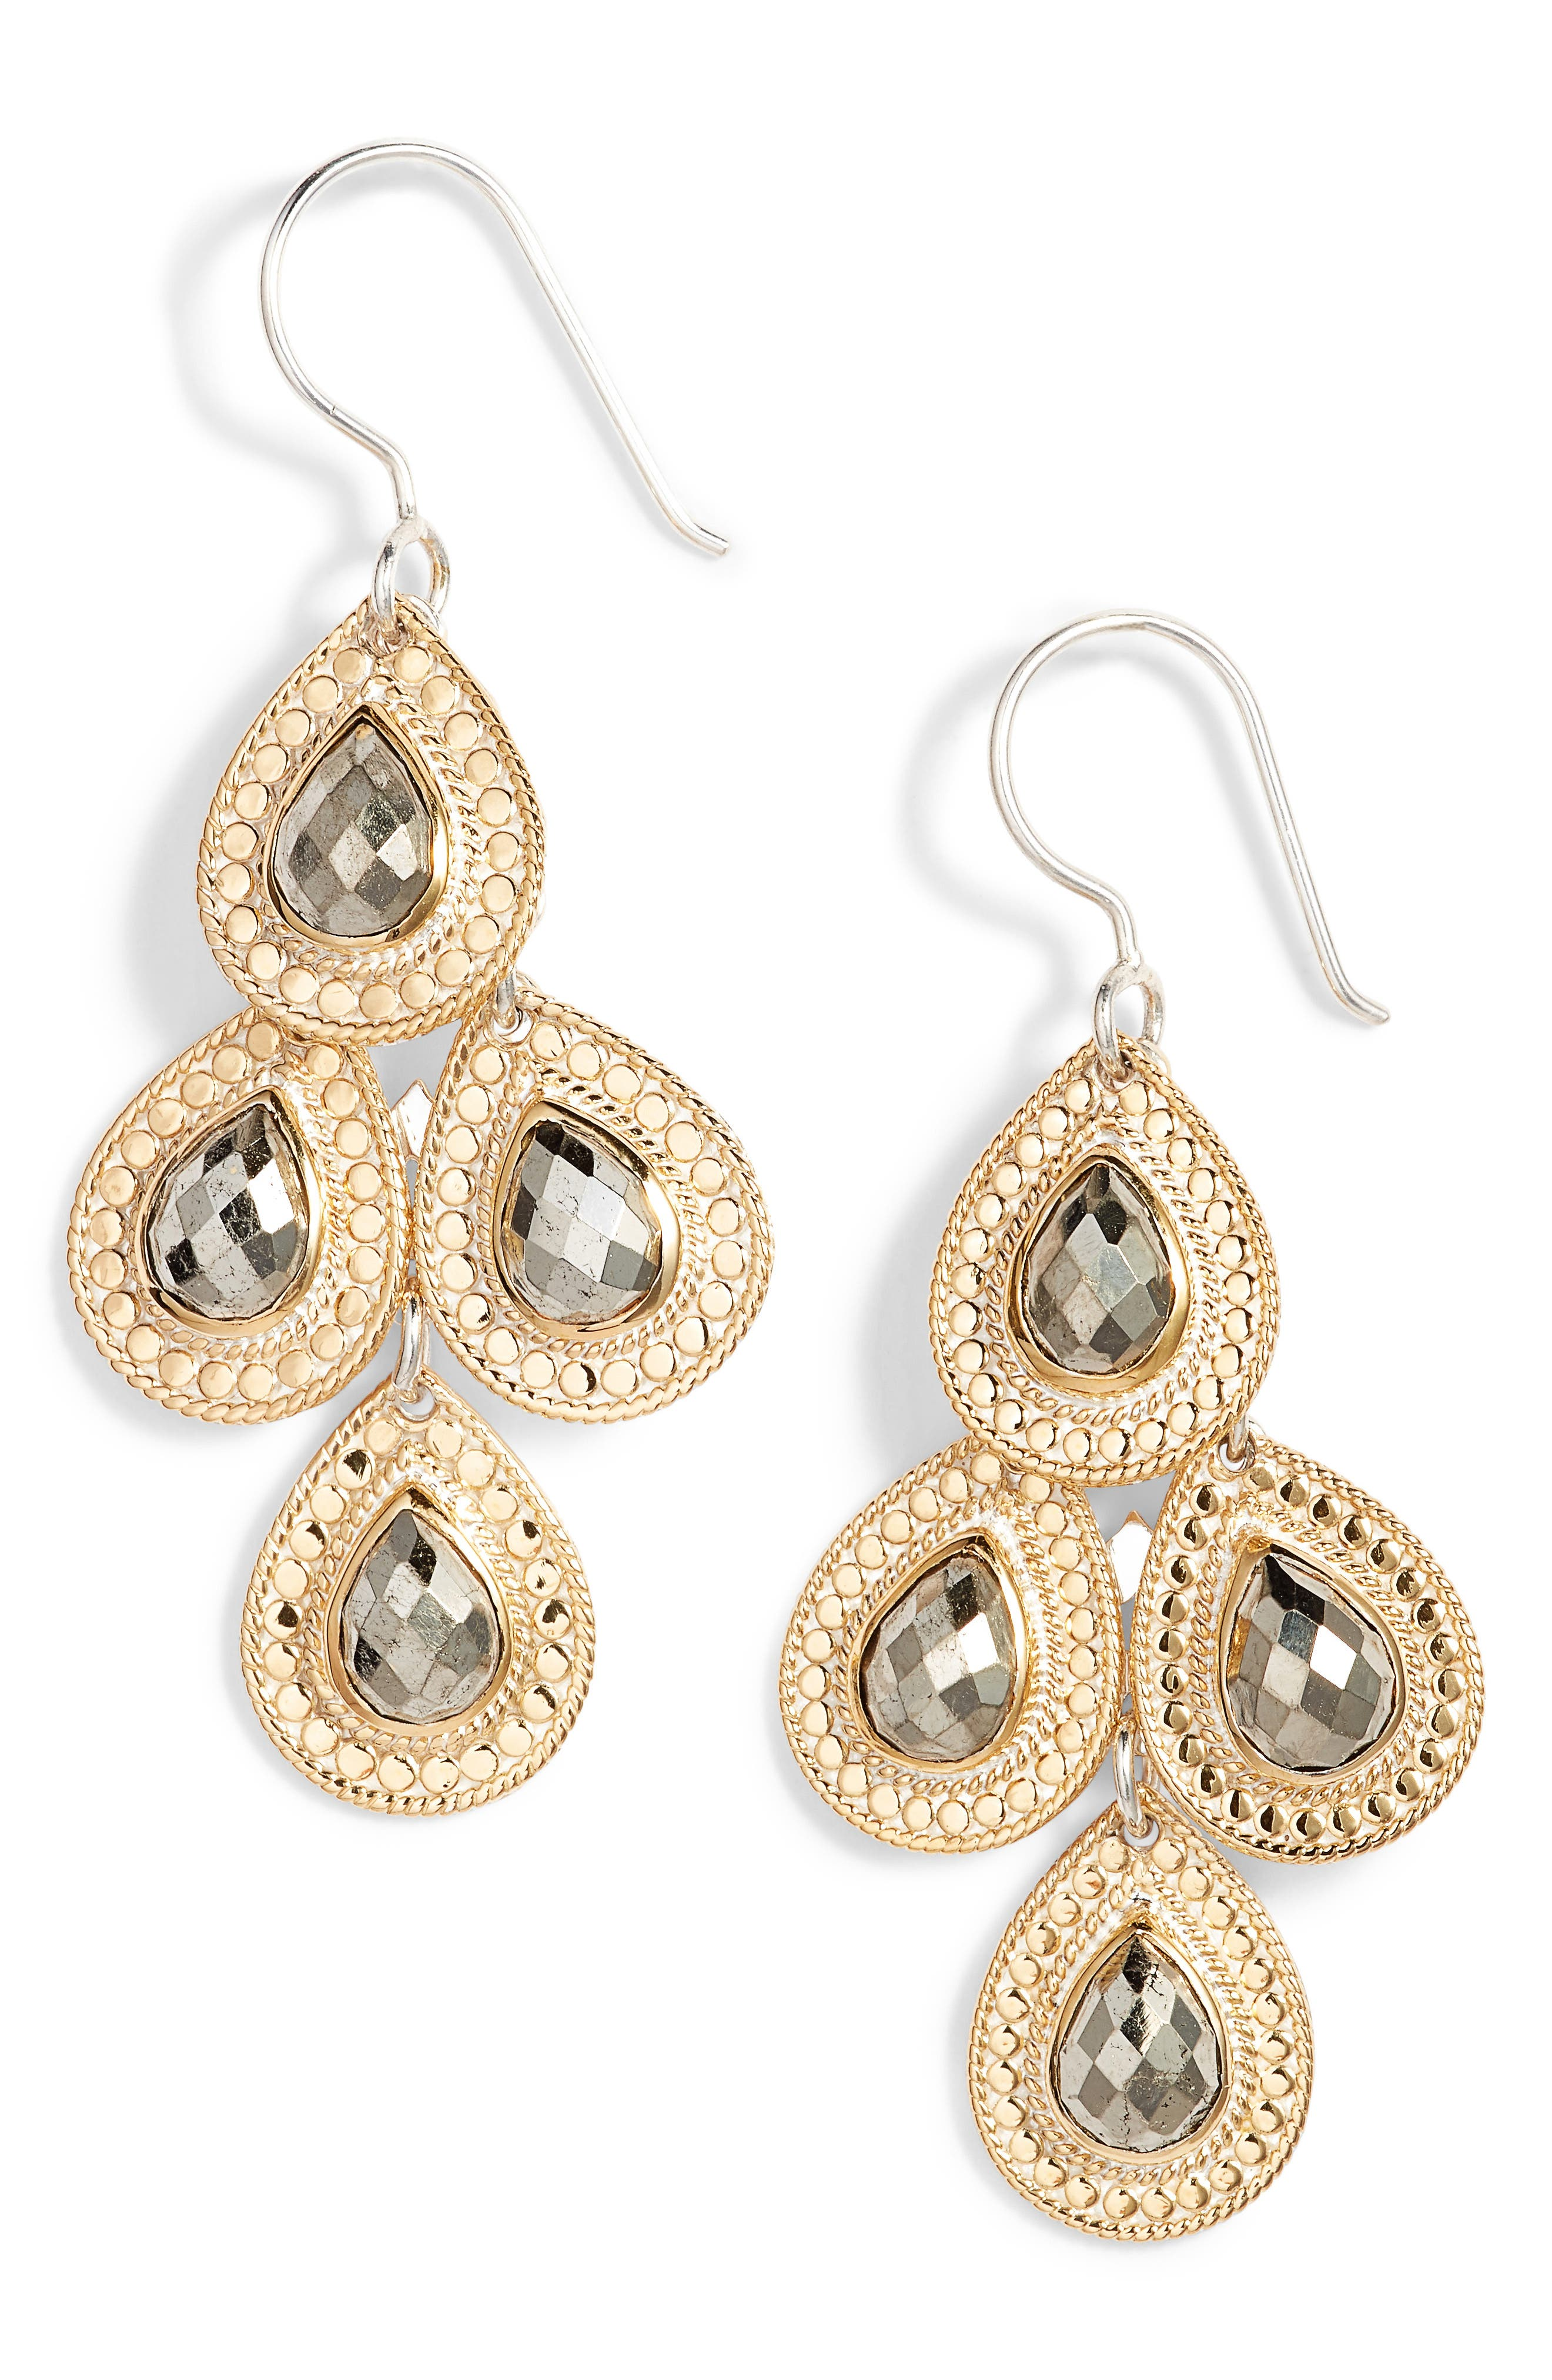 Stone Chandelier Earrings,                             Main thumbnail 1, color,                             Gold/ Silver/ Pyrite